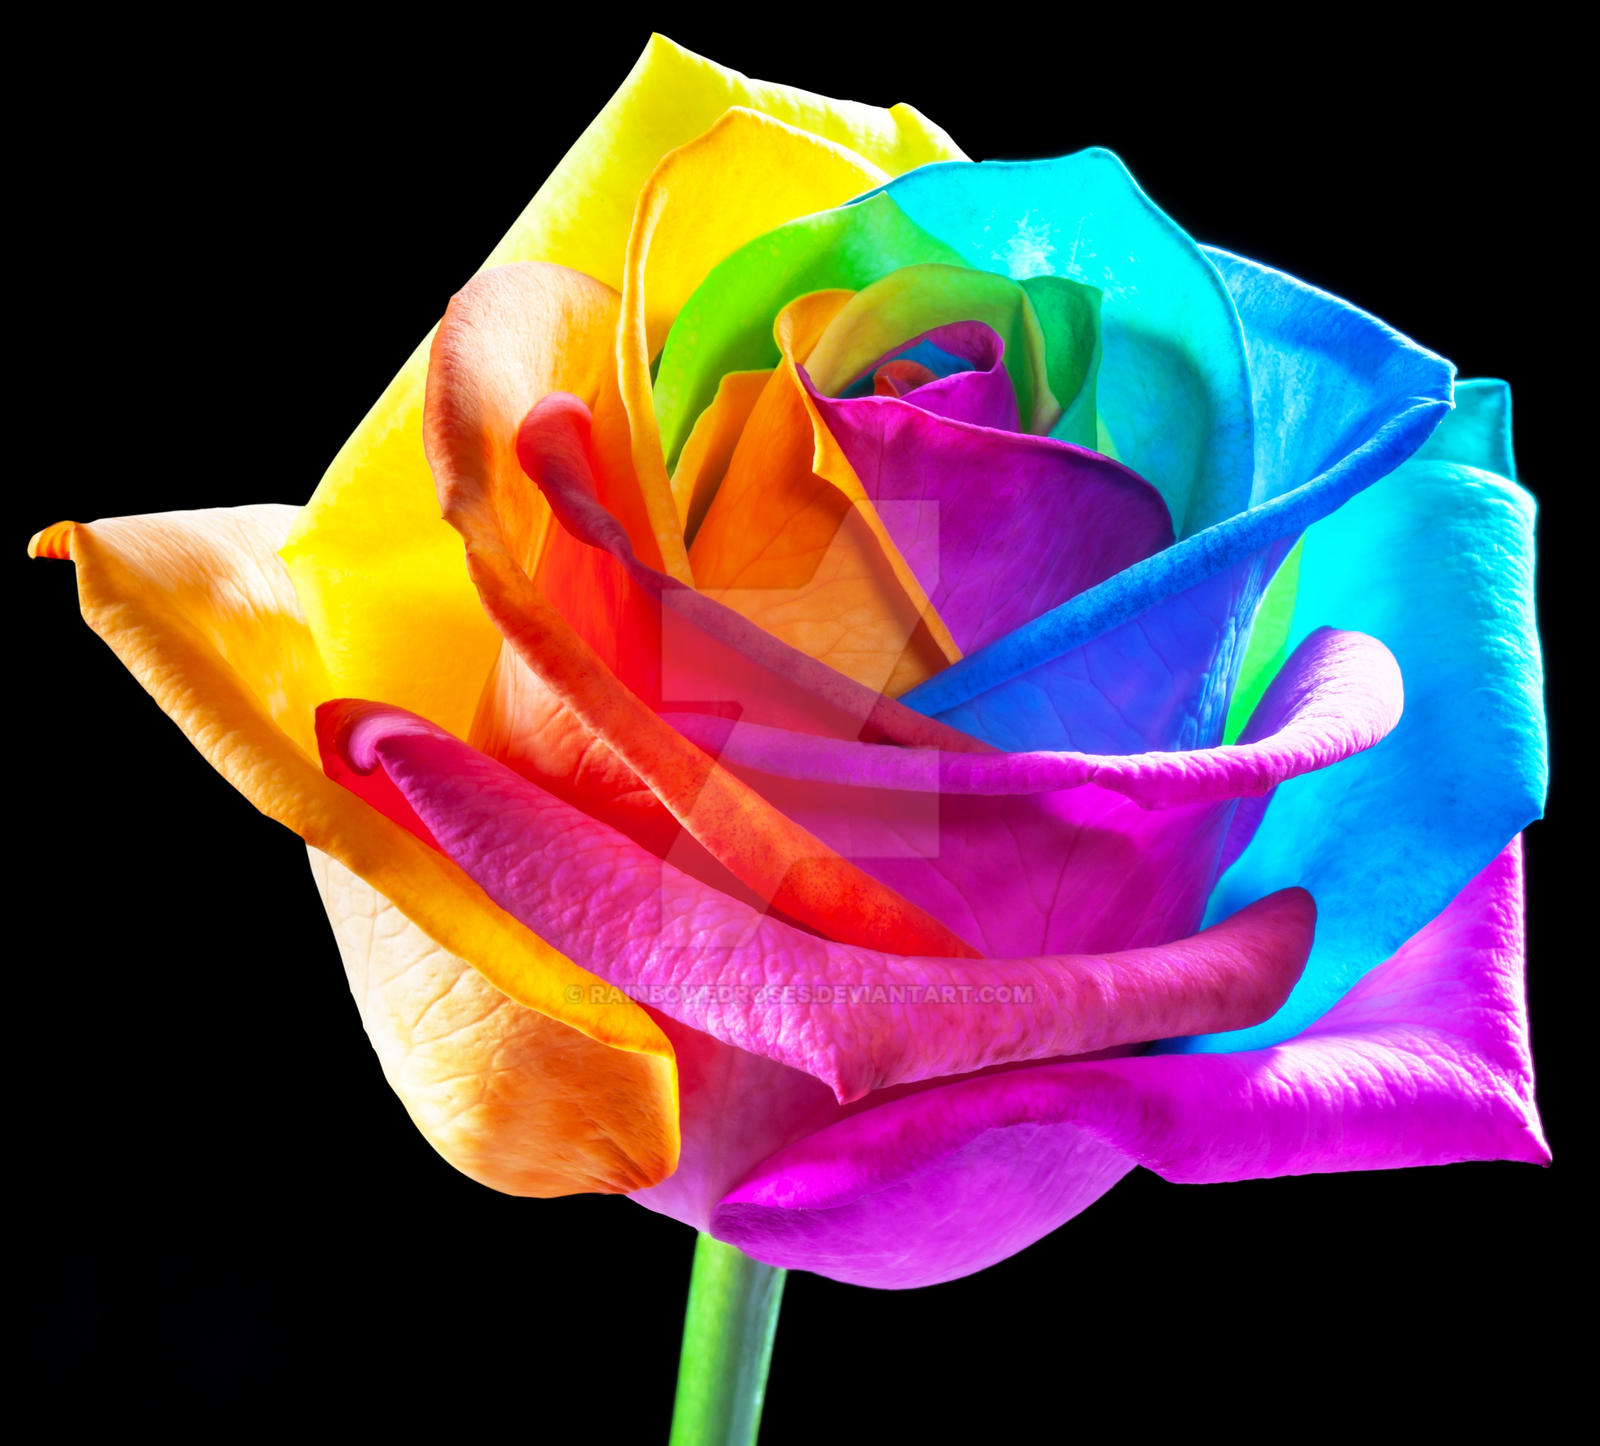 Rainbowedroses in hd perfection by rainbowedroses on for Where can i buy rainbow roses in the uk